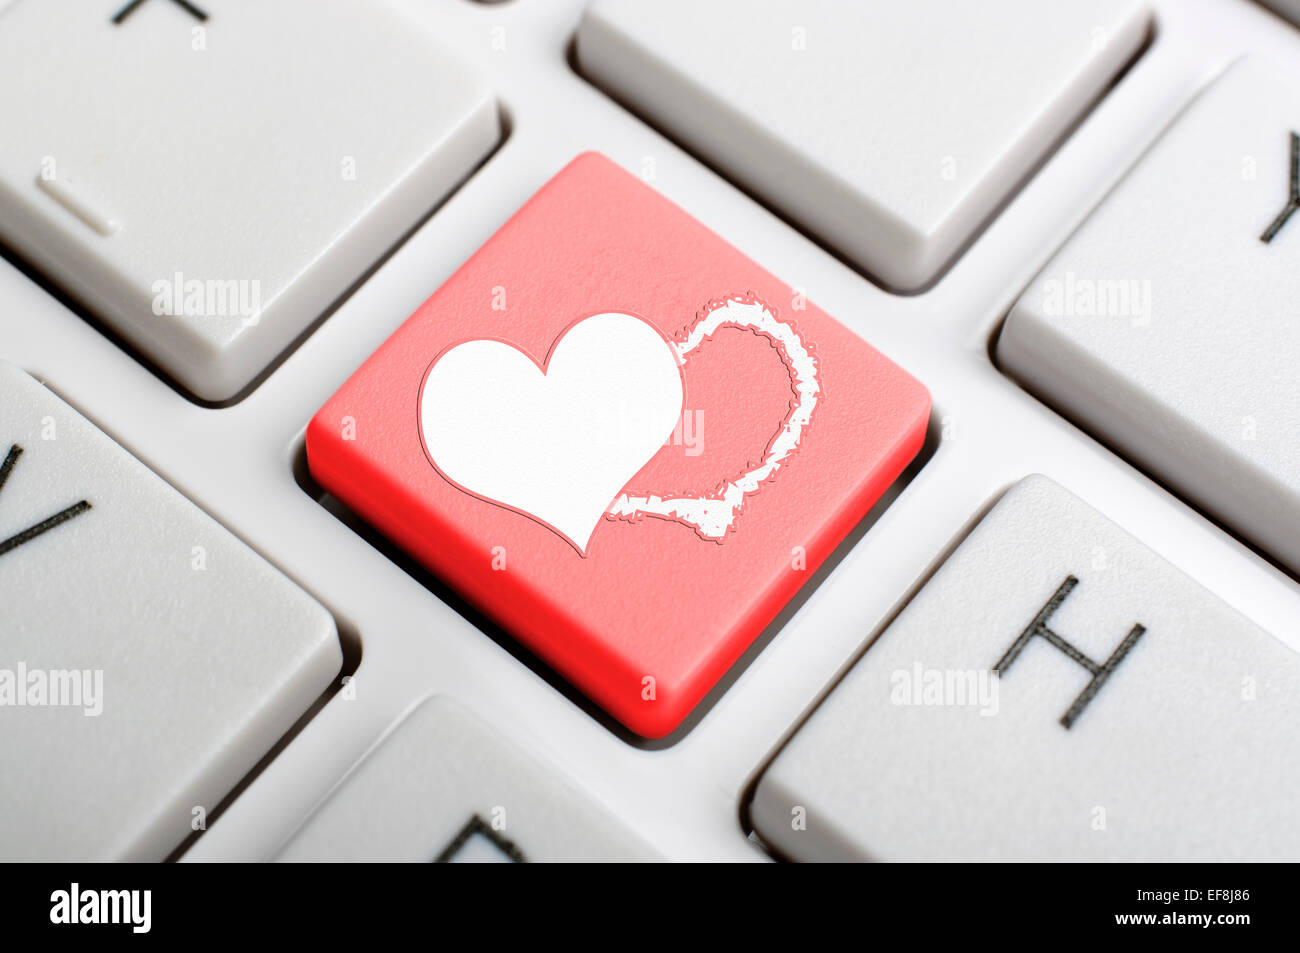 Red heart symbol key on keyboard stock photo 78251270 alamy red heart symbol key on keyboard biocorpaavc Images